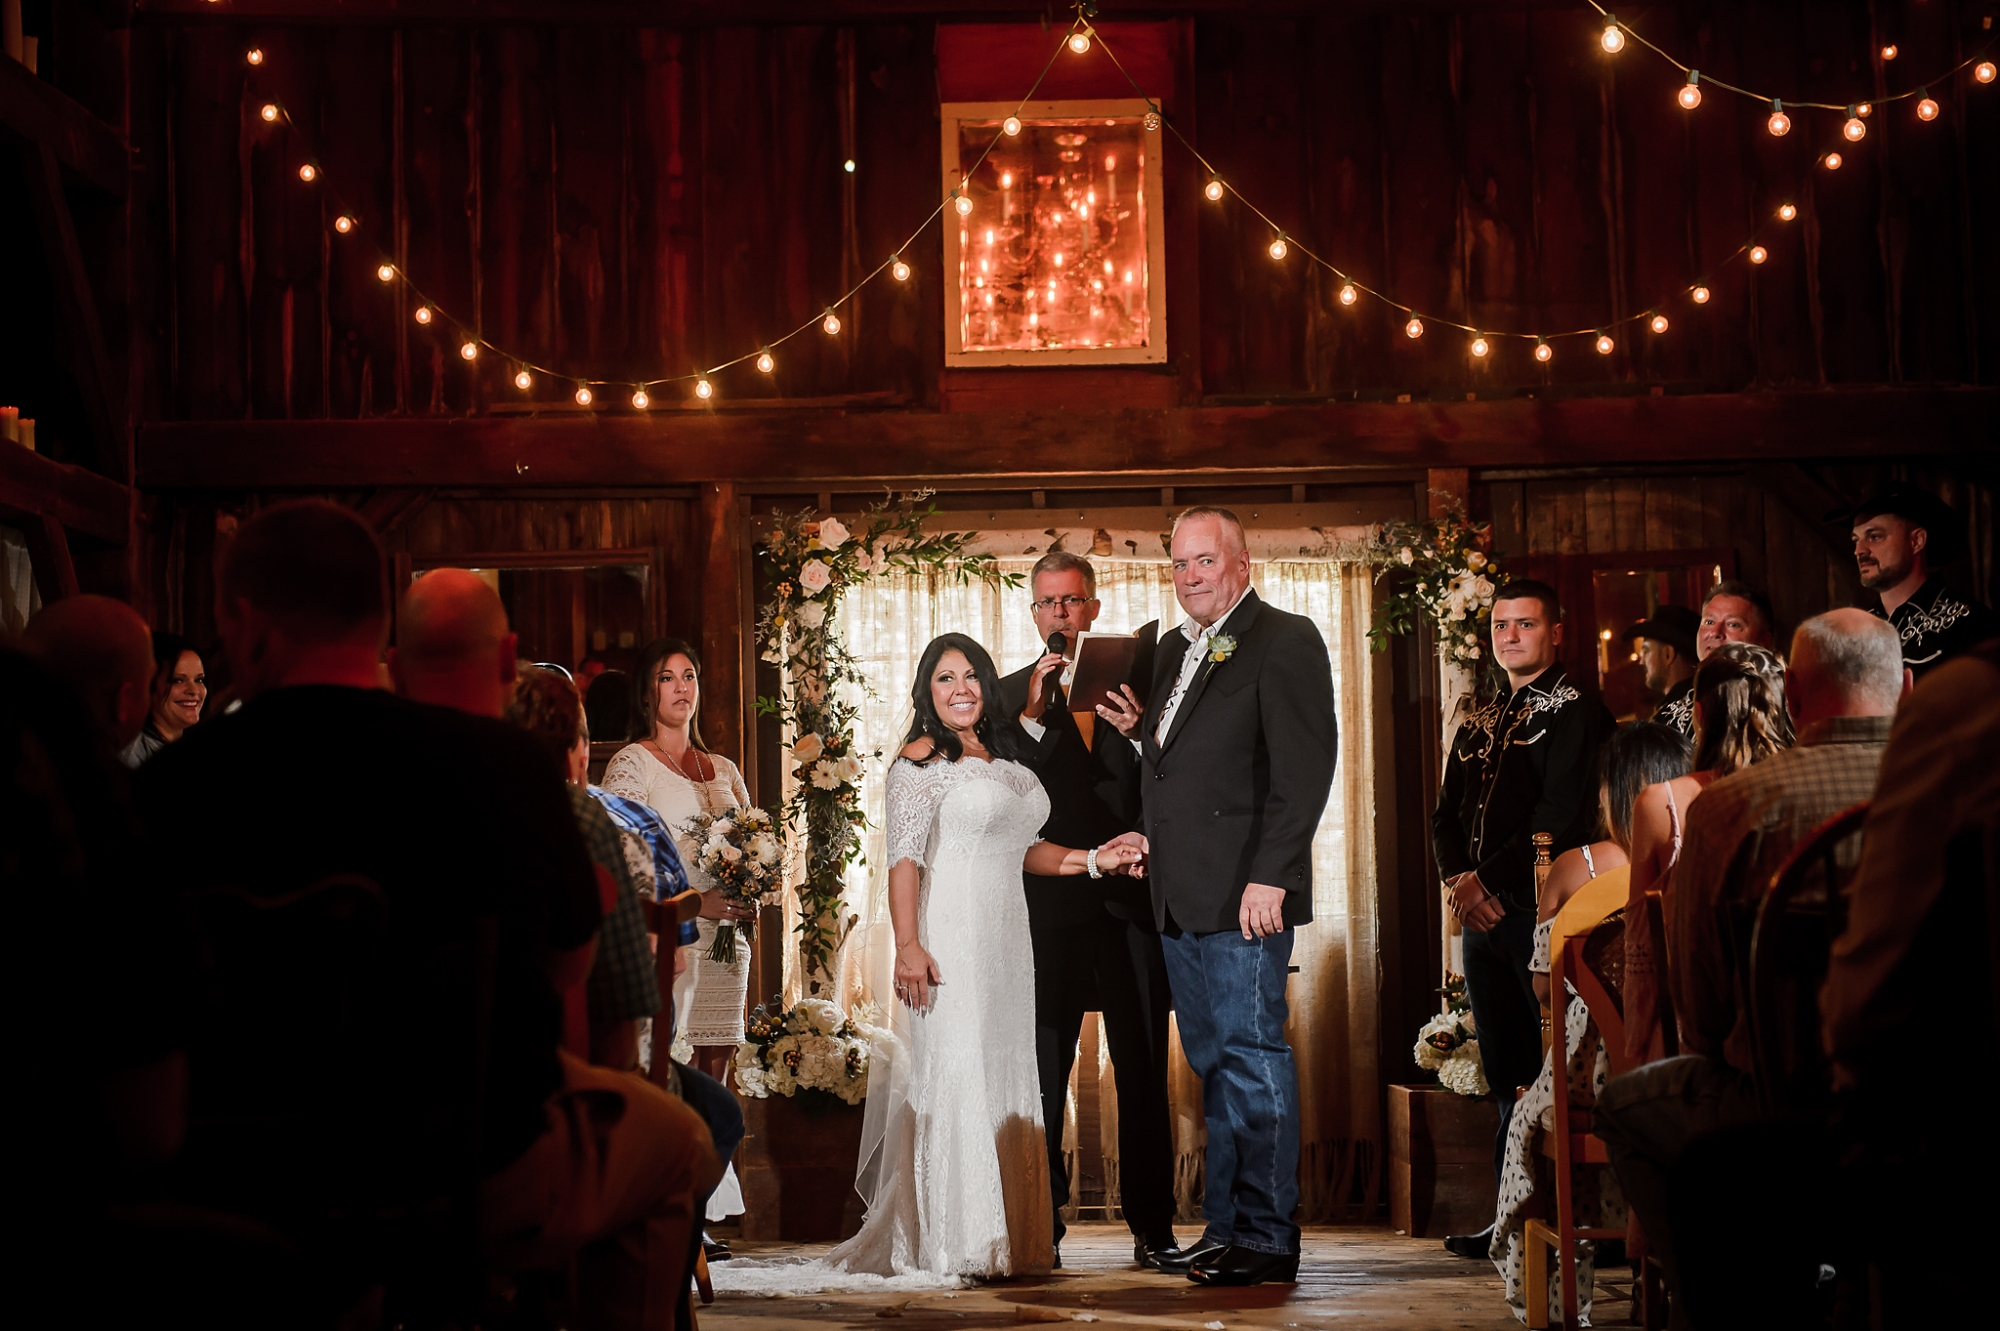 Jacks-Barn-Wedding-Janine-Collette-Photography40